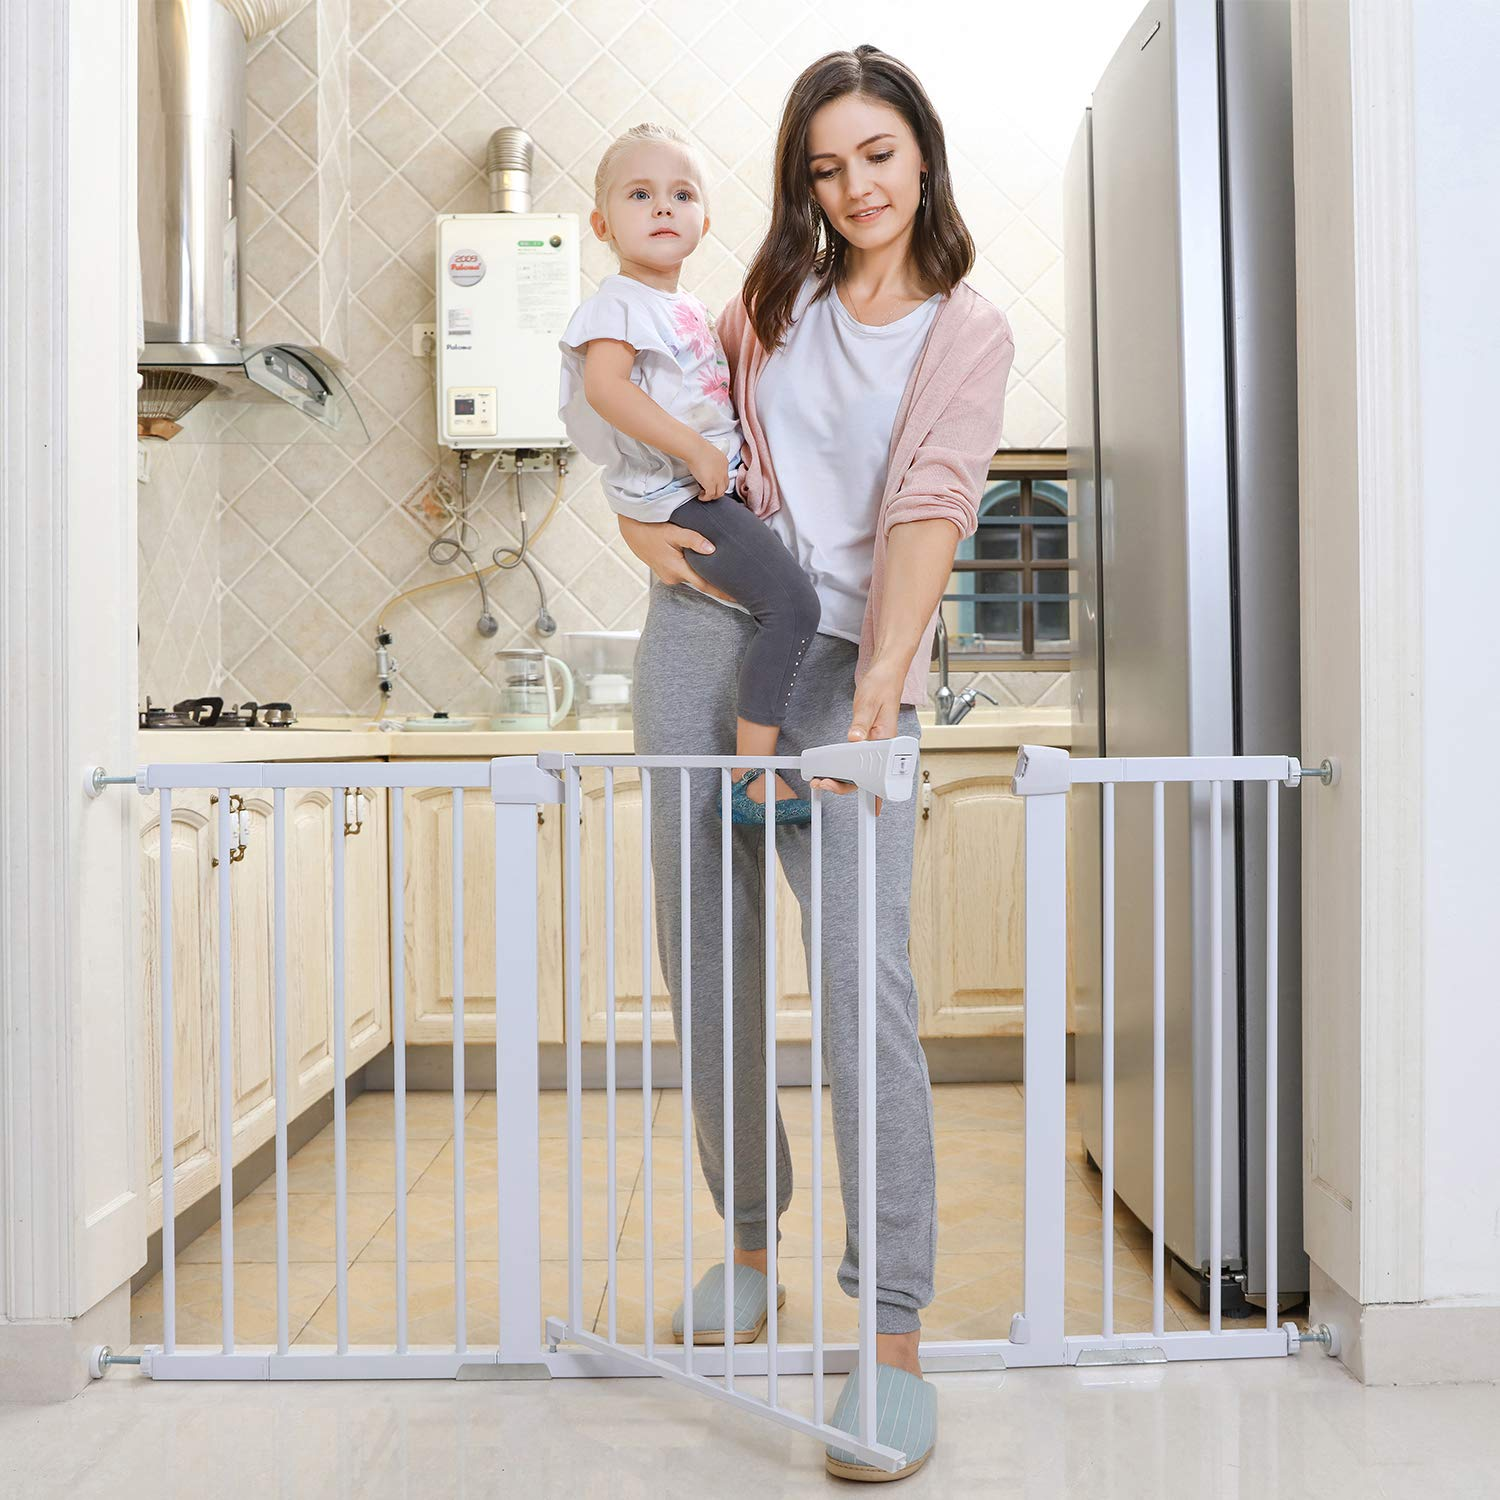 Safety Baby Gate,29.5-40.5 inch Auto Close Features Luxury Extra Tall Wide Child Gate, Heavy-Duty gate, Easy Walk-Thru pet Gate for The House, Stairs, Doorways Hallways. Applicable 29.5 -40.5